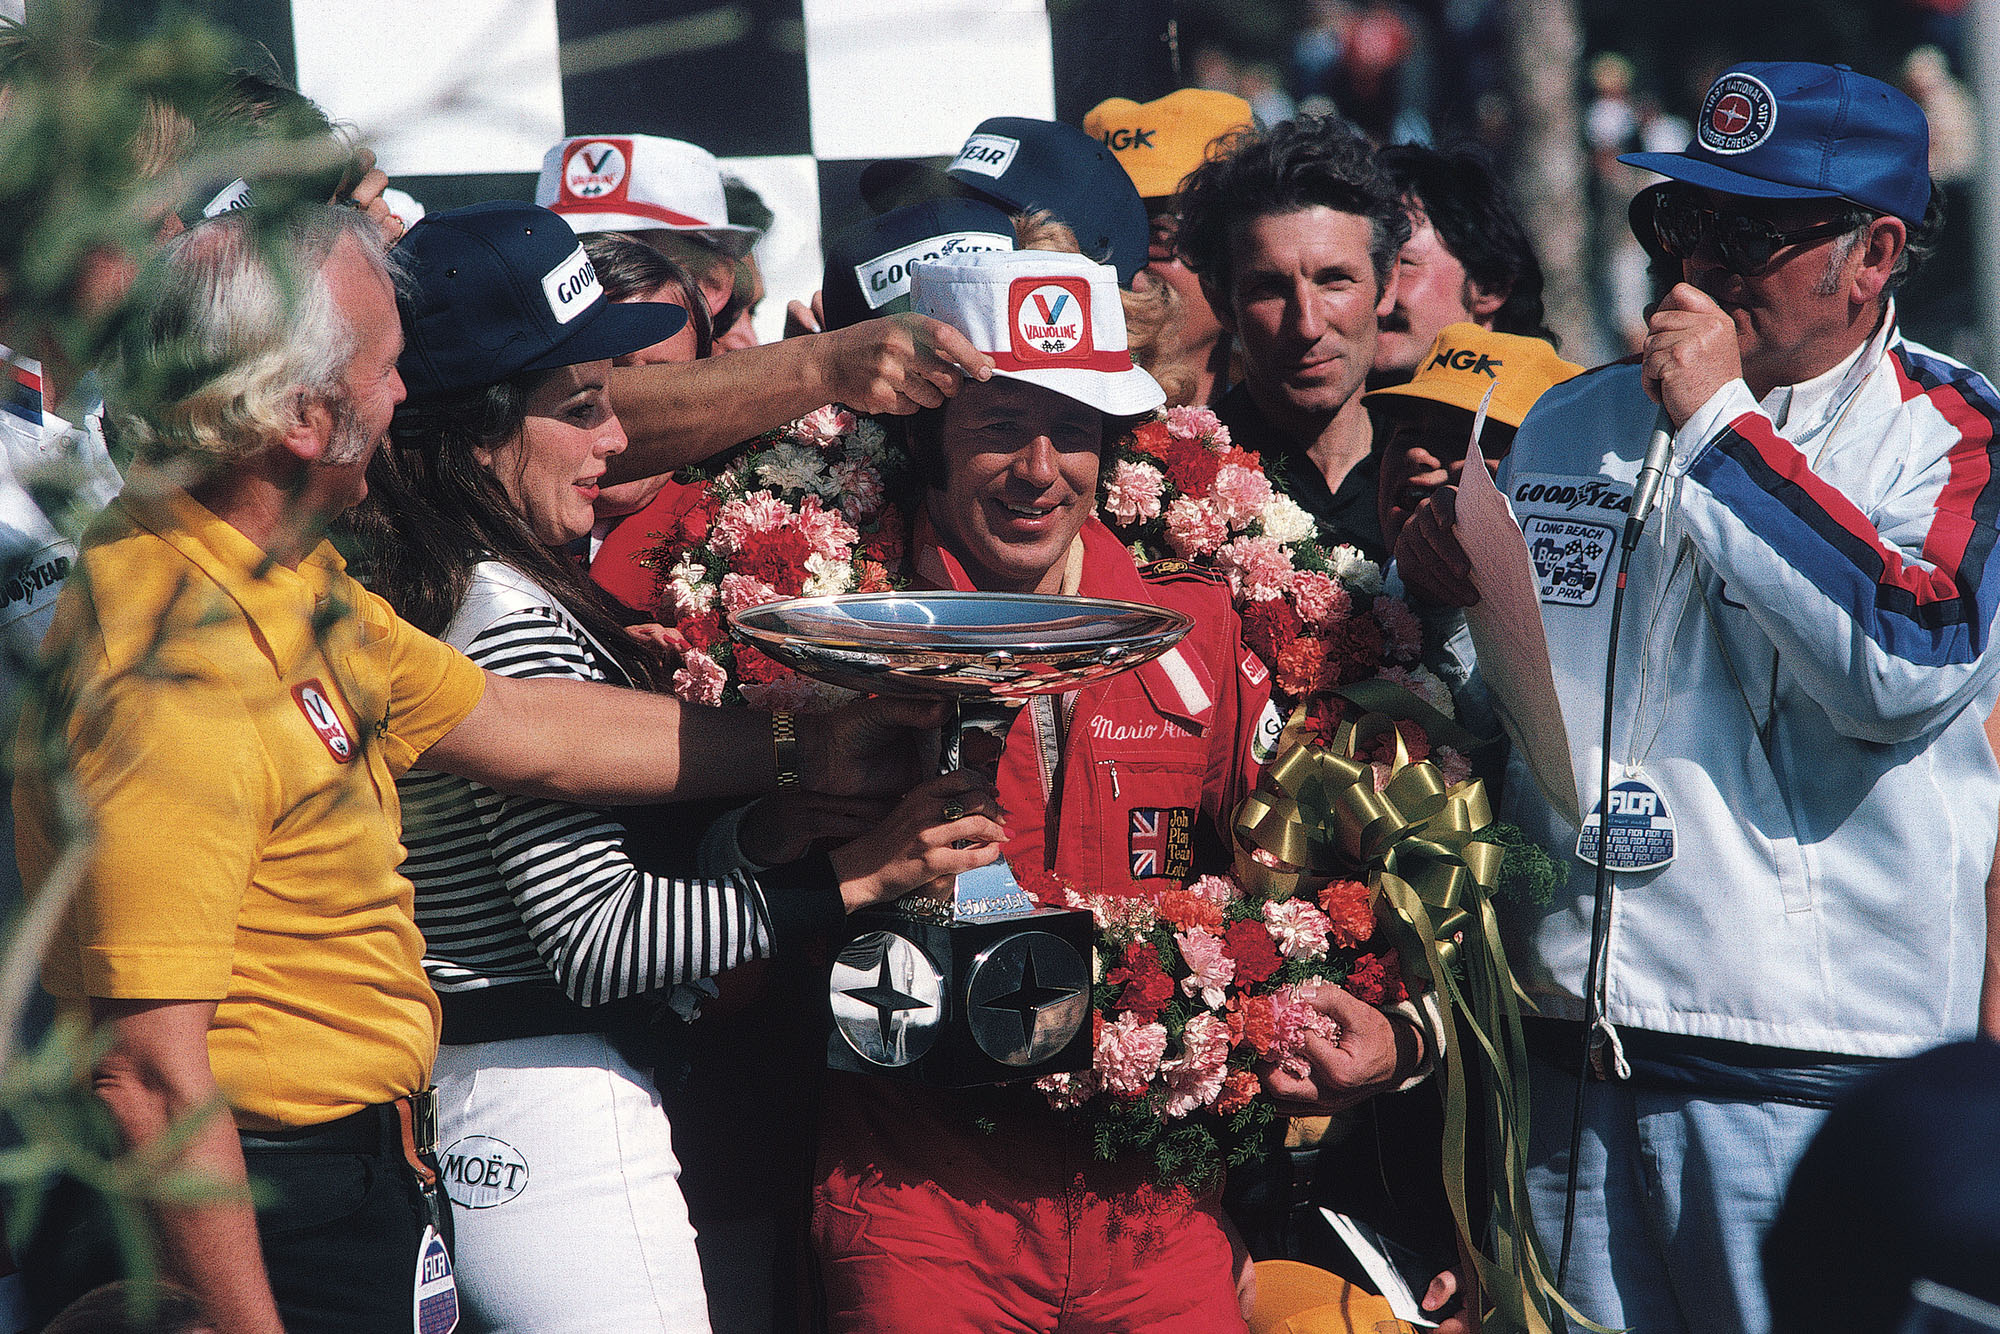 Mario Andretti (Lotus) celebrates on the podium after winning the 1977 United States Grand Prix West, Long Beach.